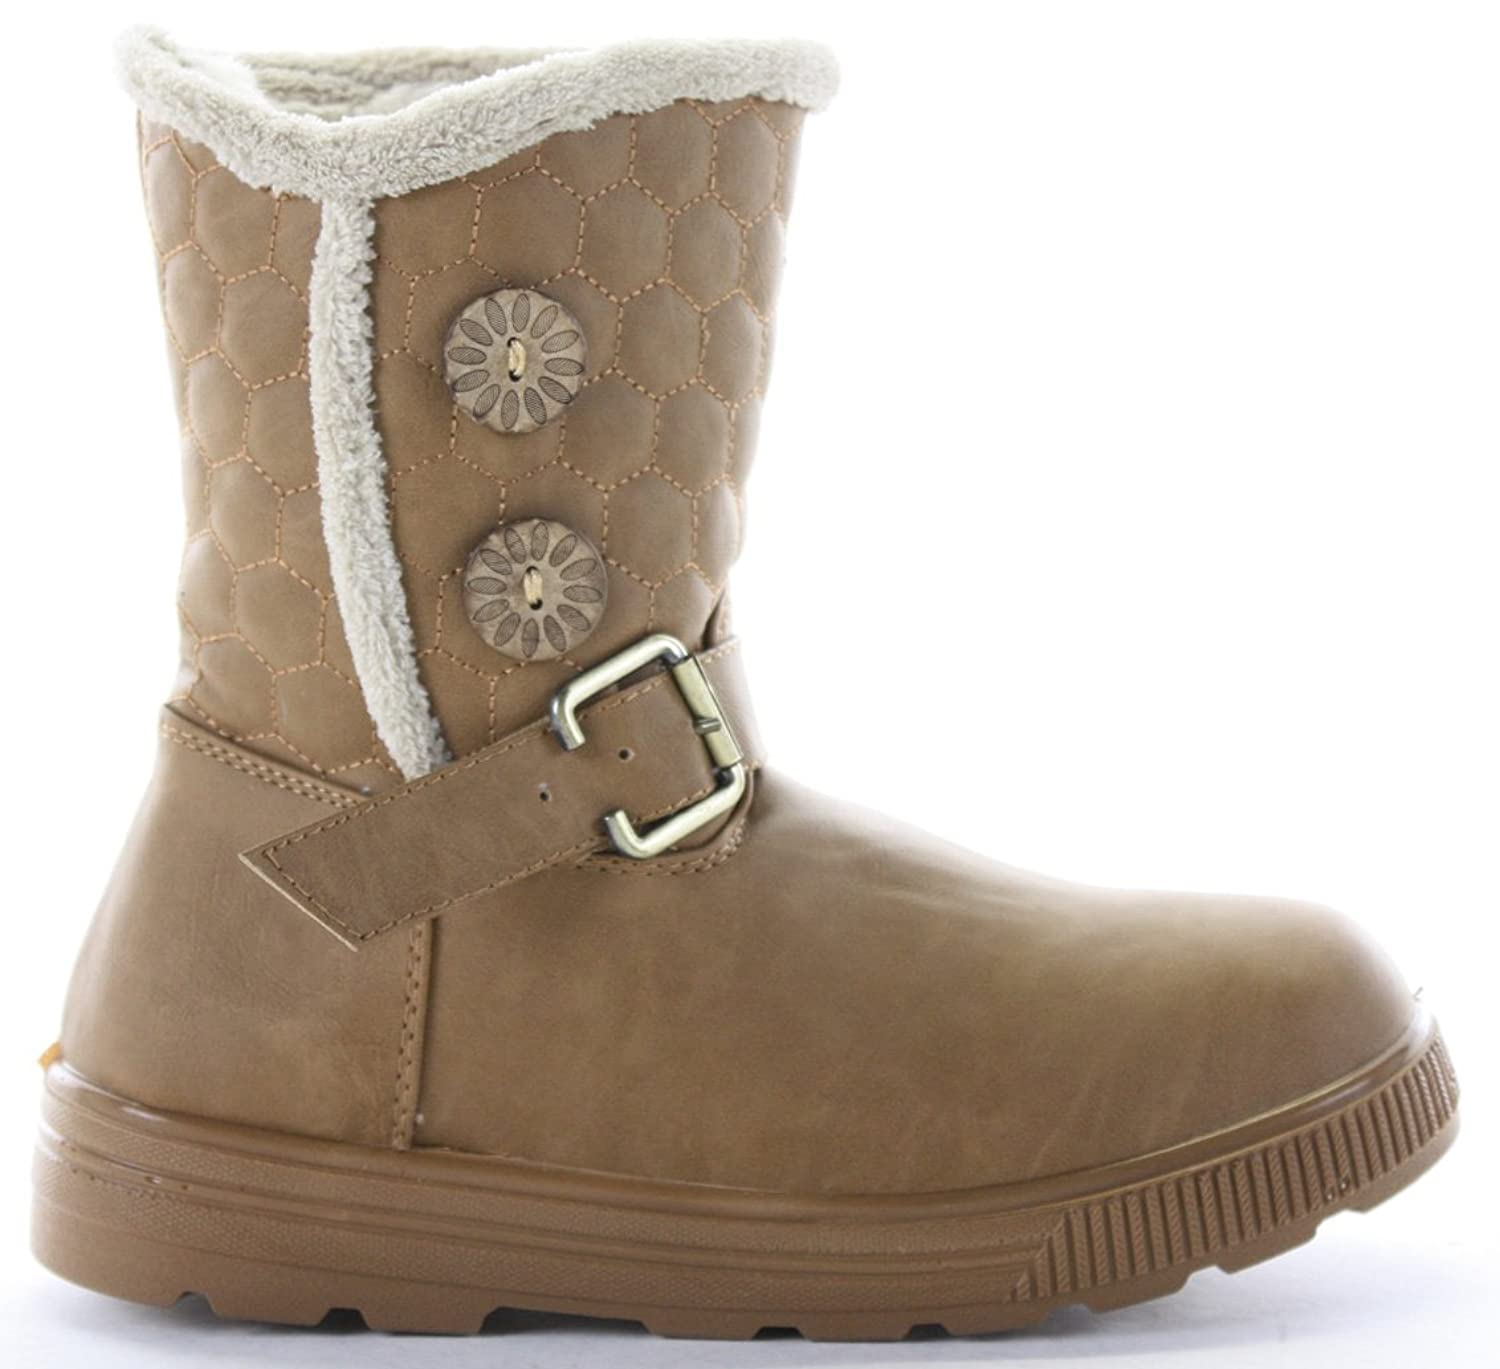 Winter Biker Riding Fur Lined Quilted Low Heel Snow Ankle Boots Size 3 - 8  new: Amazon.co.uk: Shoes & Bags